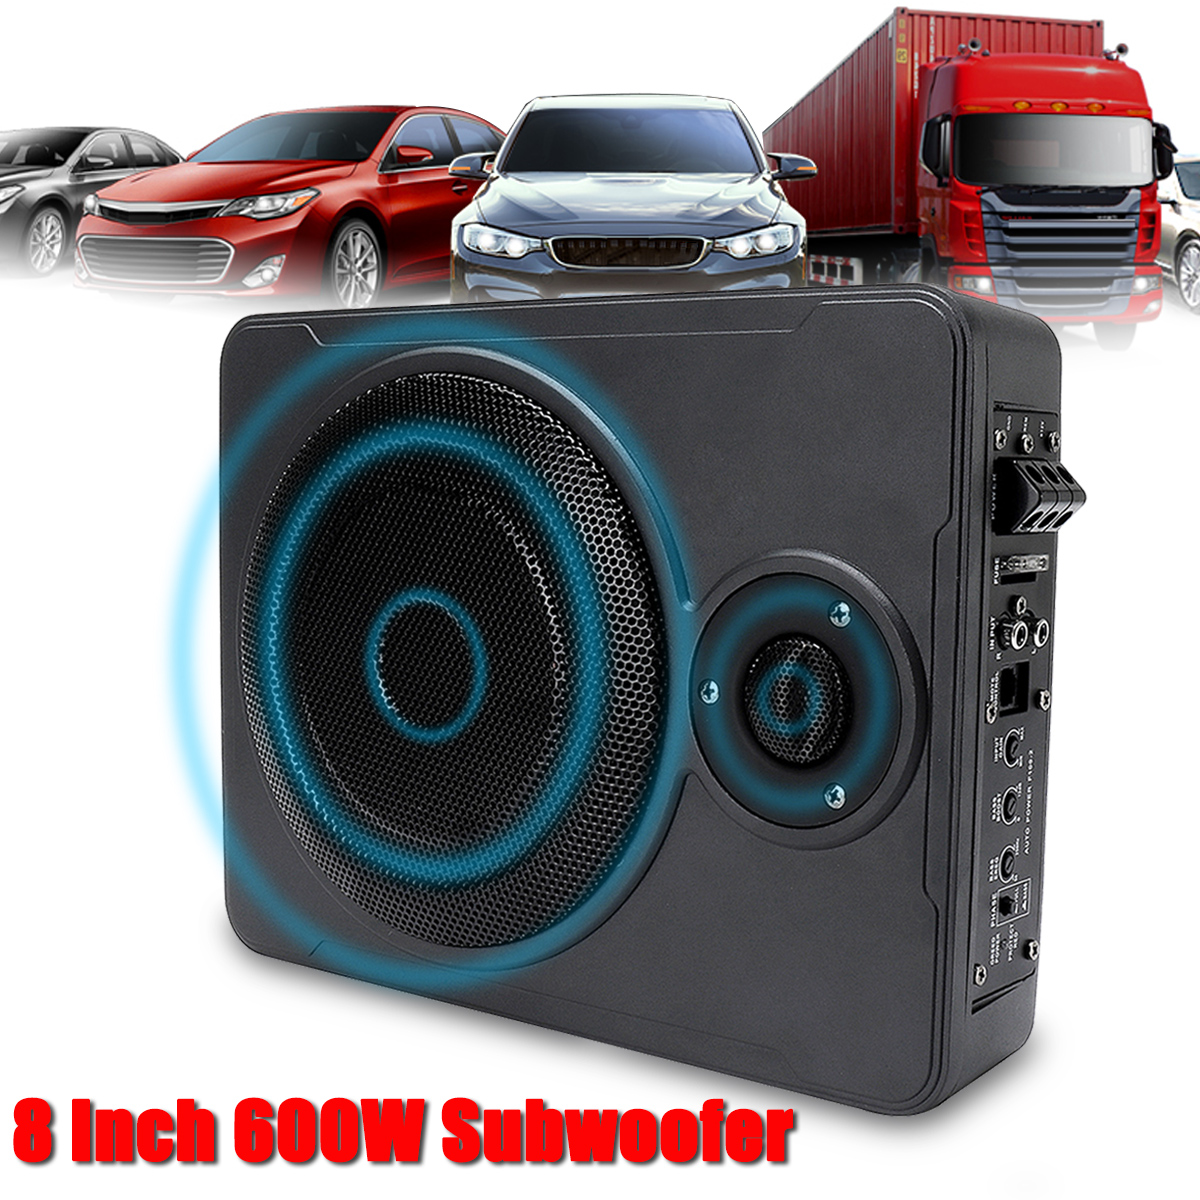 8 Inch bluetooth <font><b>Car</b></font> Home Subwoofer Under Seat Sub 600W Stereo Subwoofer <font><b>Car</b></font> <font><b>Audio</b></font> <font><b>Speaker</b></font> Music System Sound Woofer image